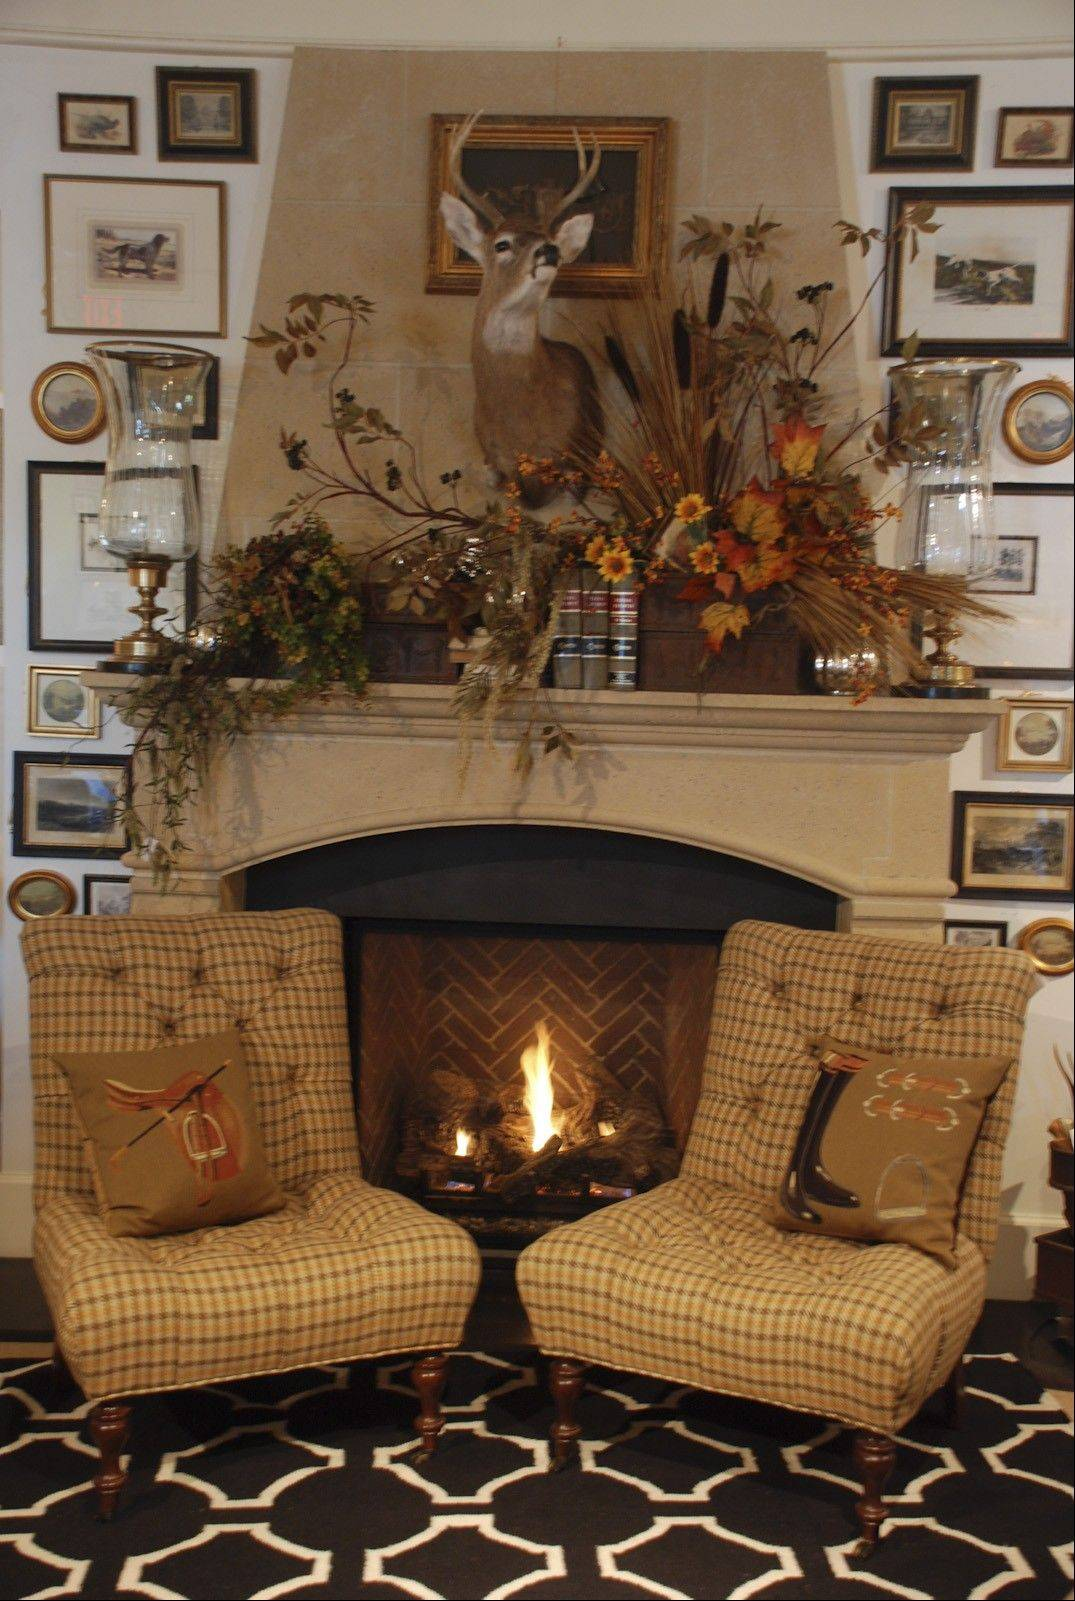 A variety of fall picks and sprays was chosen for this mantel.